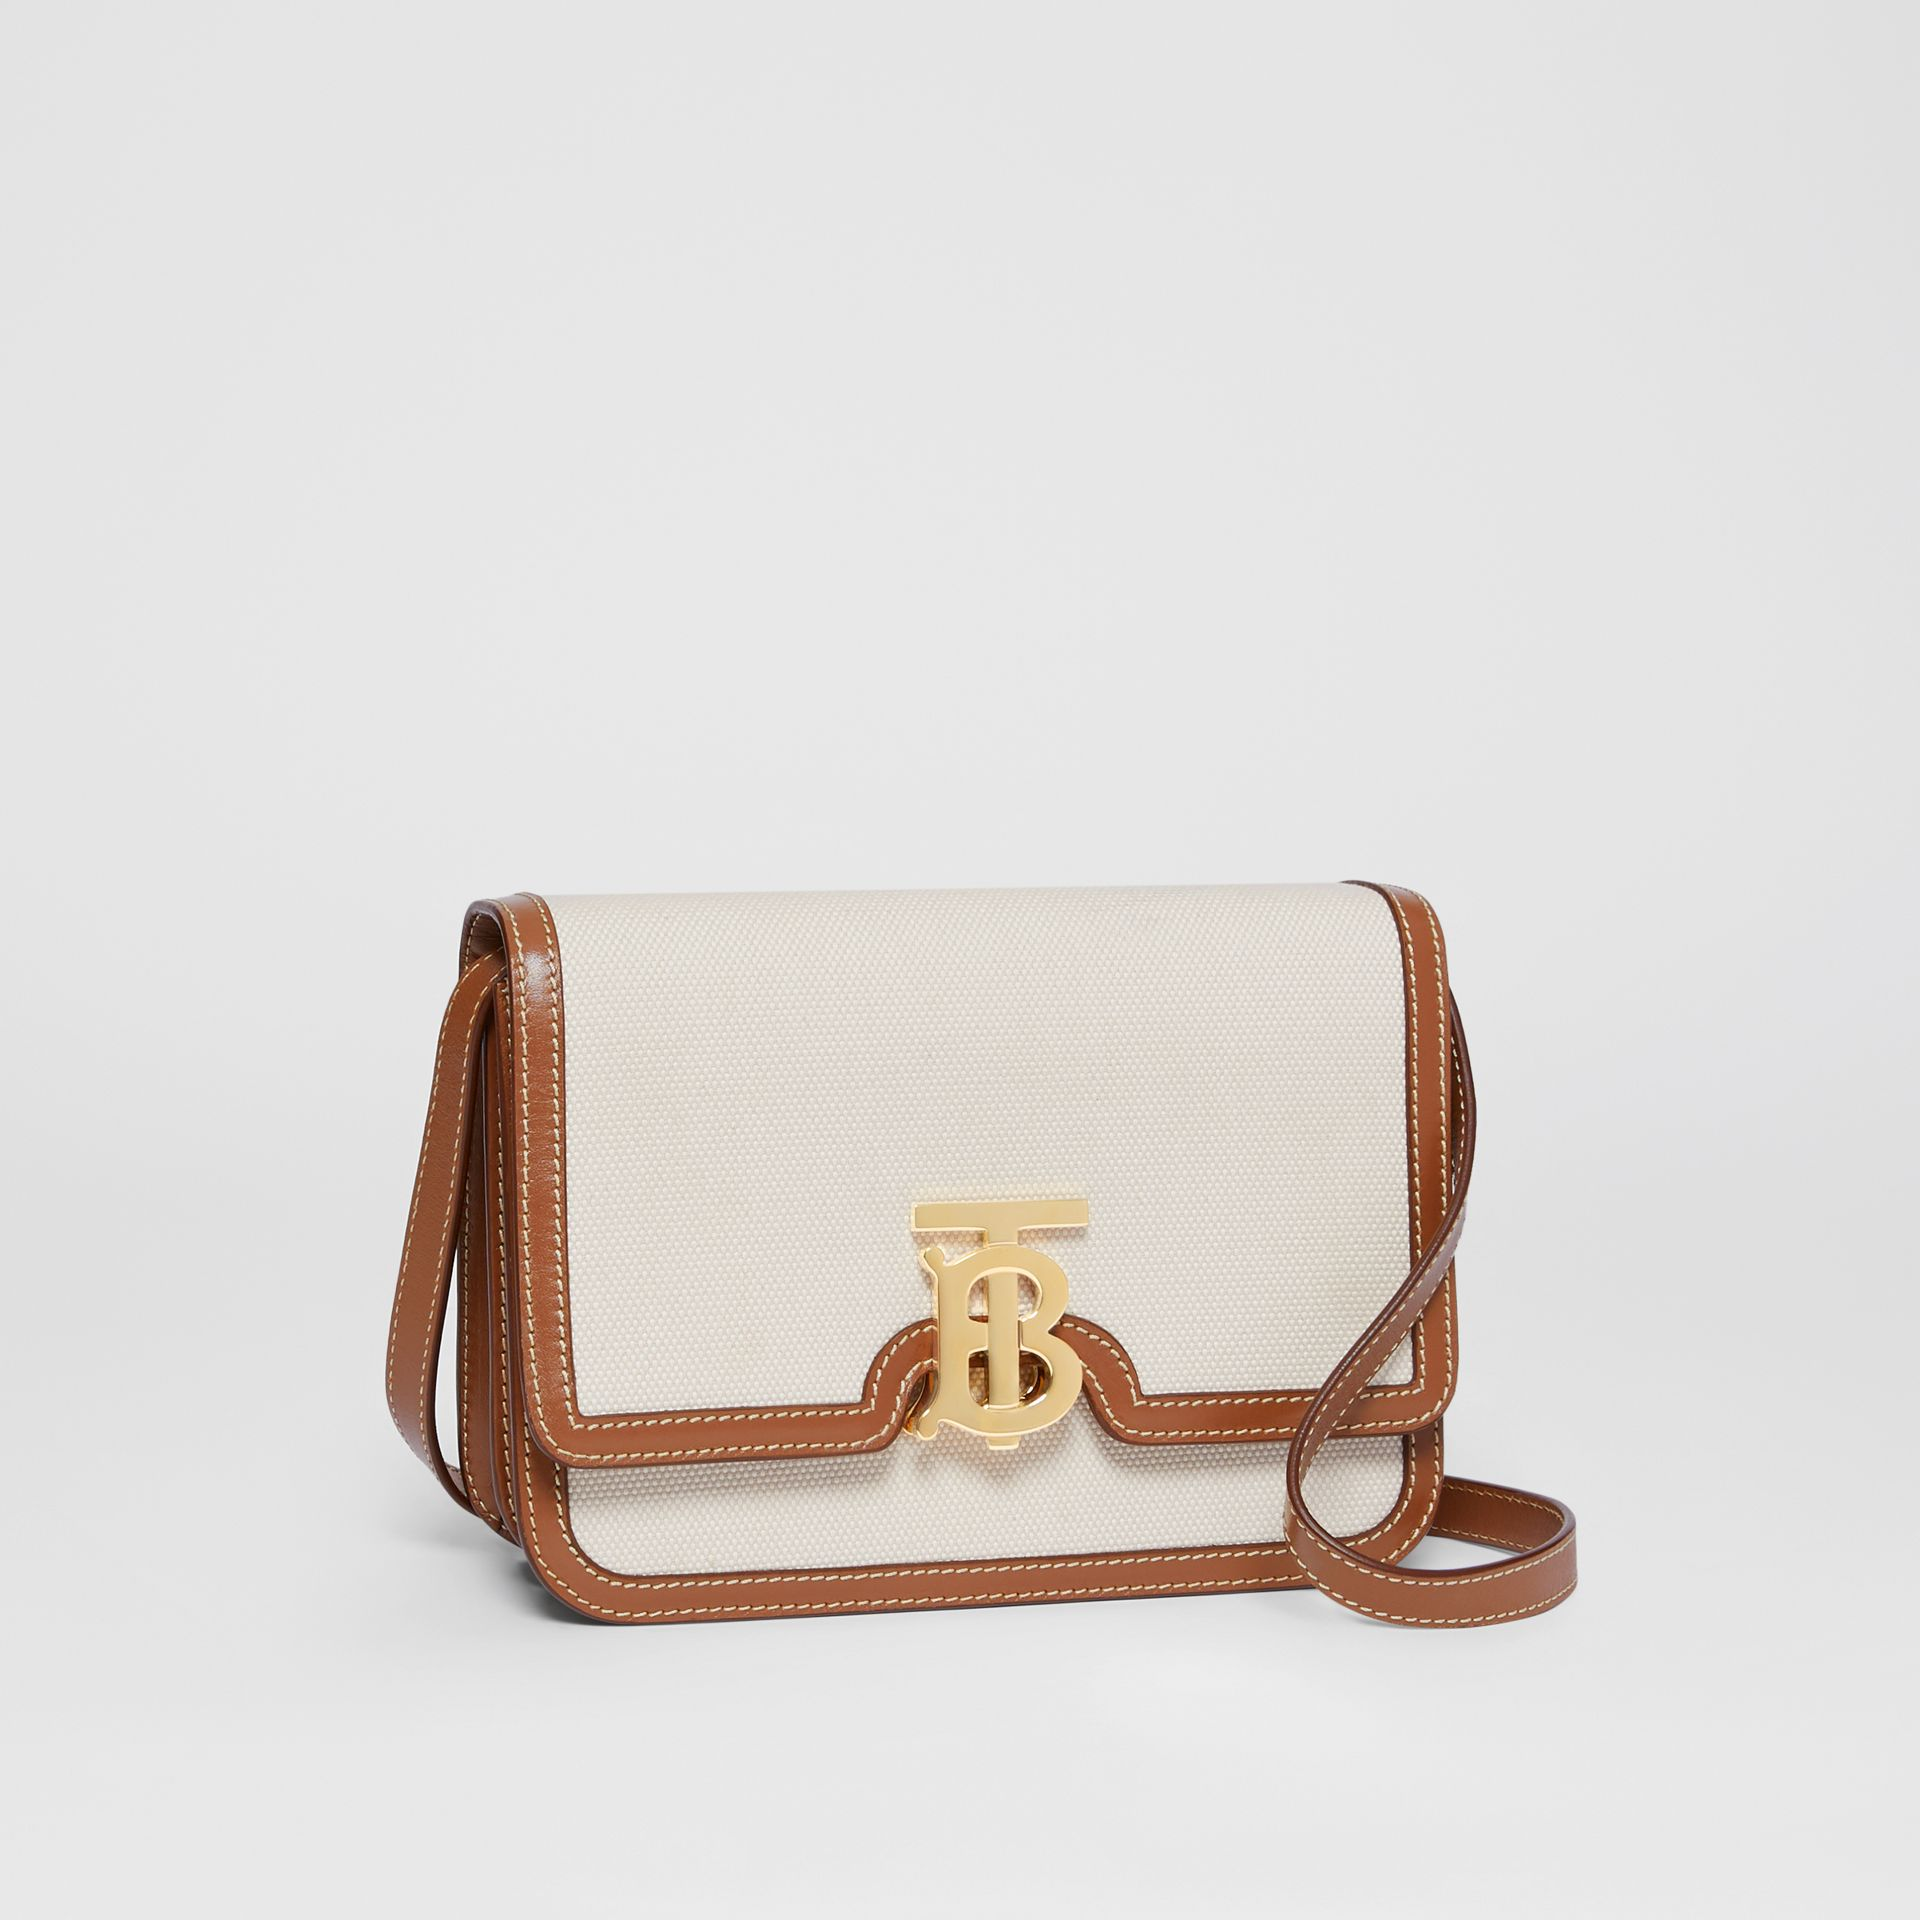 Small Two-tone Canvas and Leather TB Bag in Malt Brown - Women | Burberry United Kingdom - gallery image 6